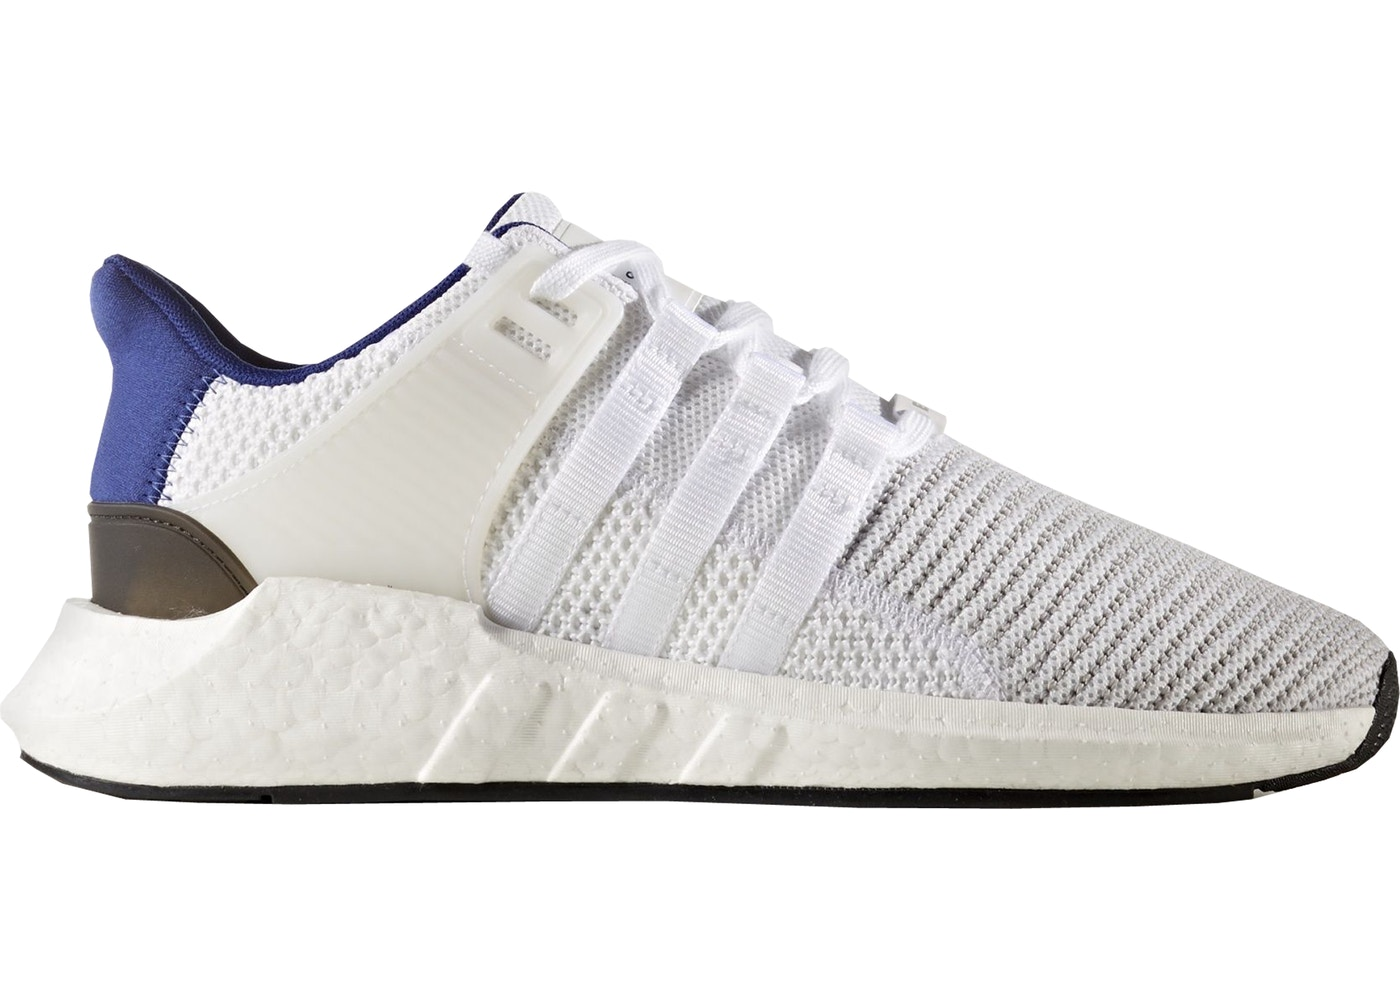 7e81b65bbf2a3 adidas EQT Support 93 17 White Royal - BZ0592